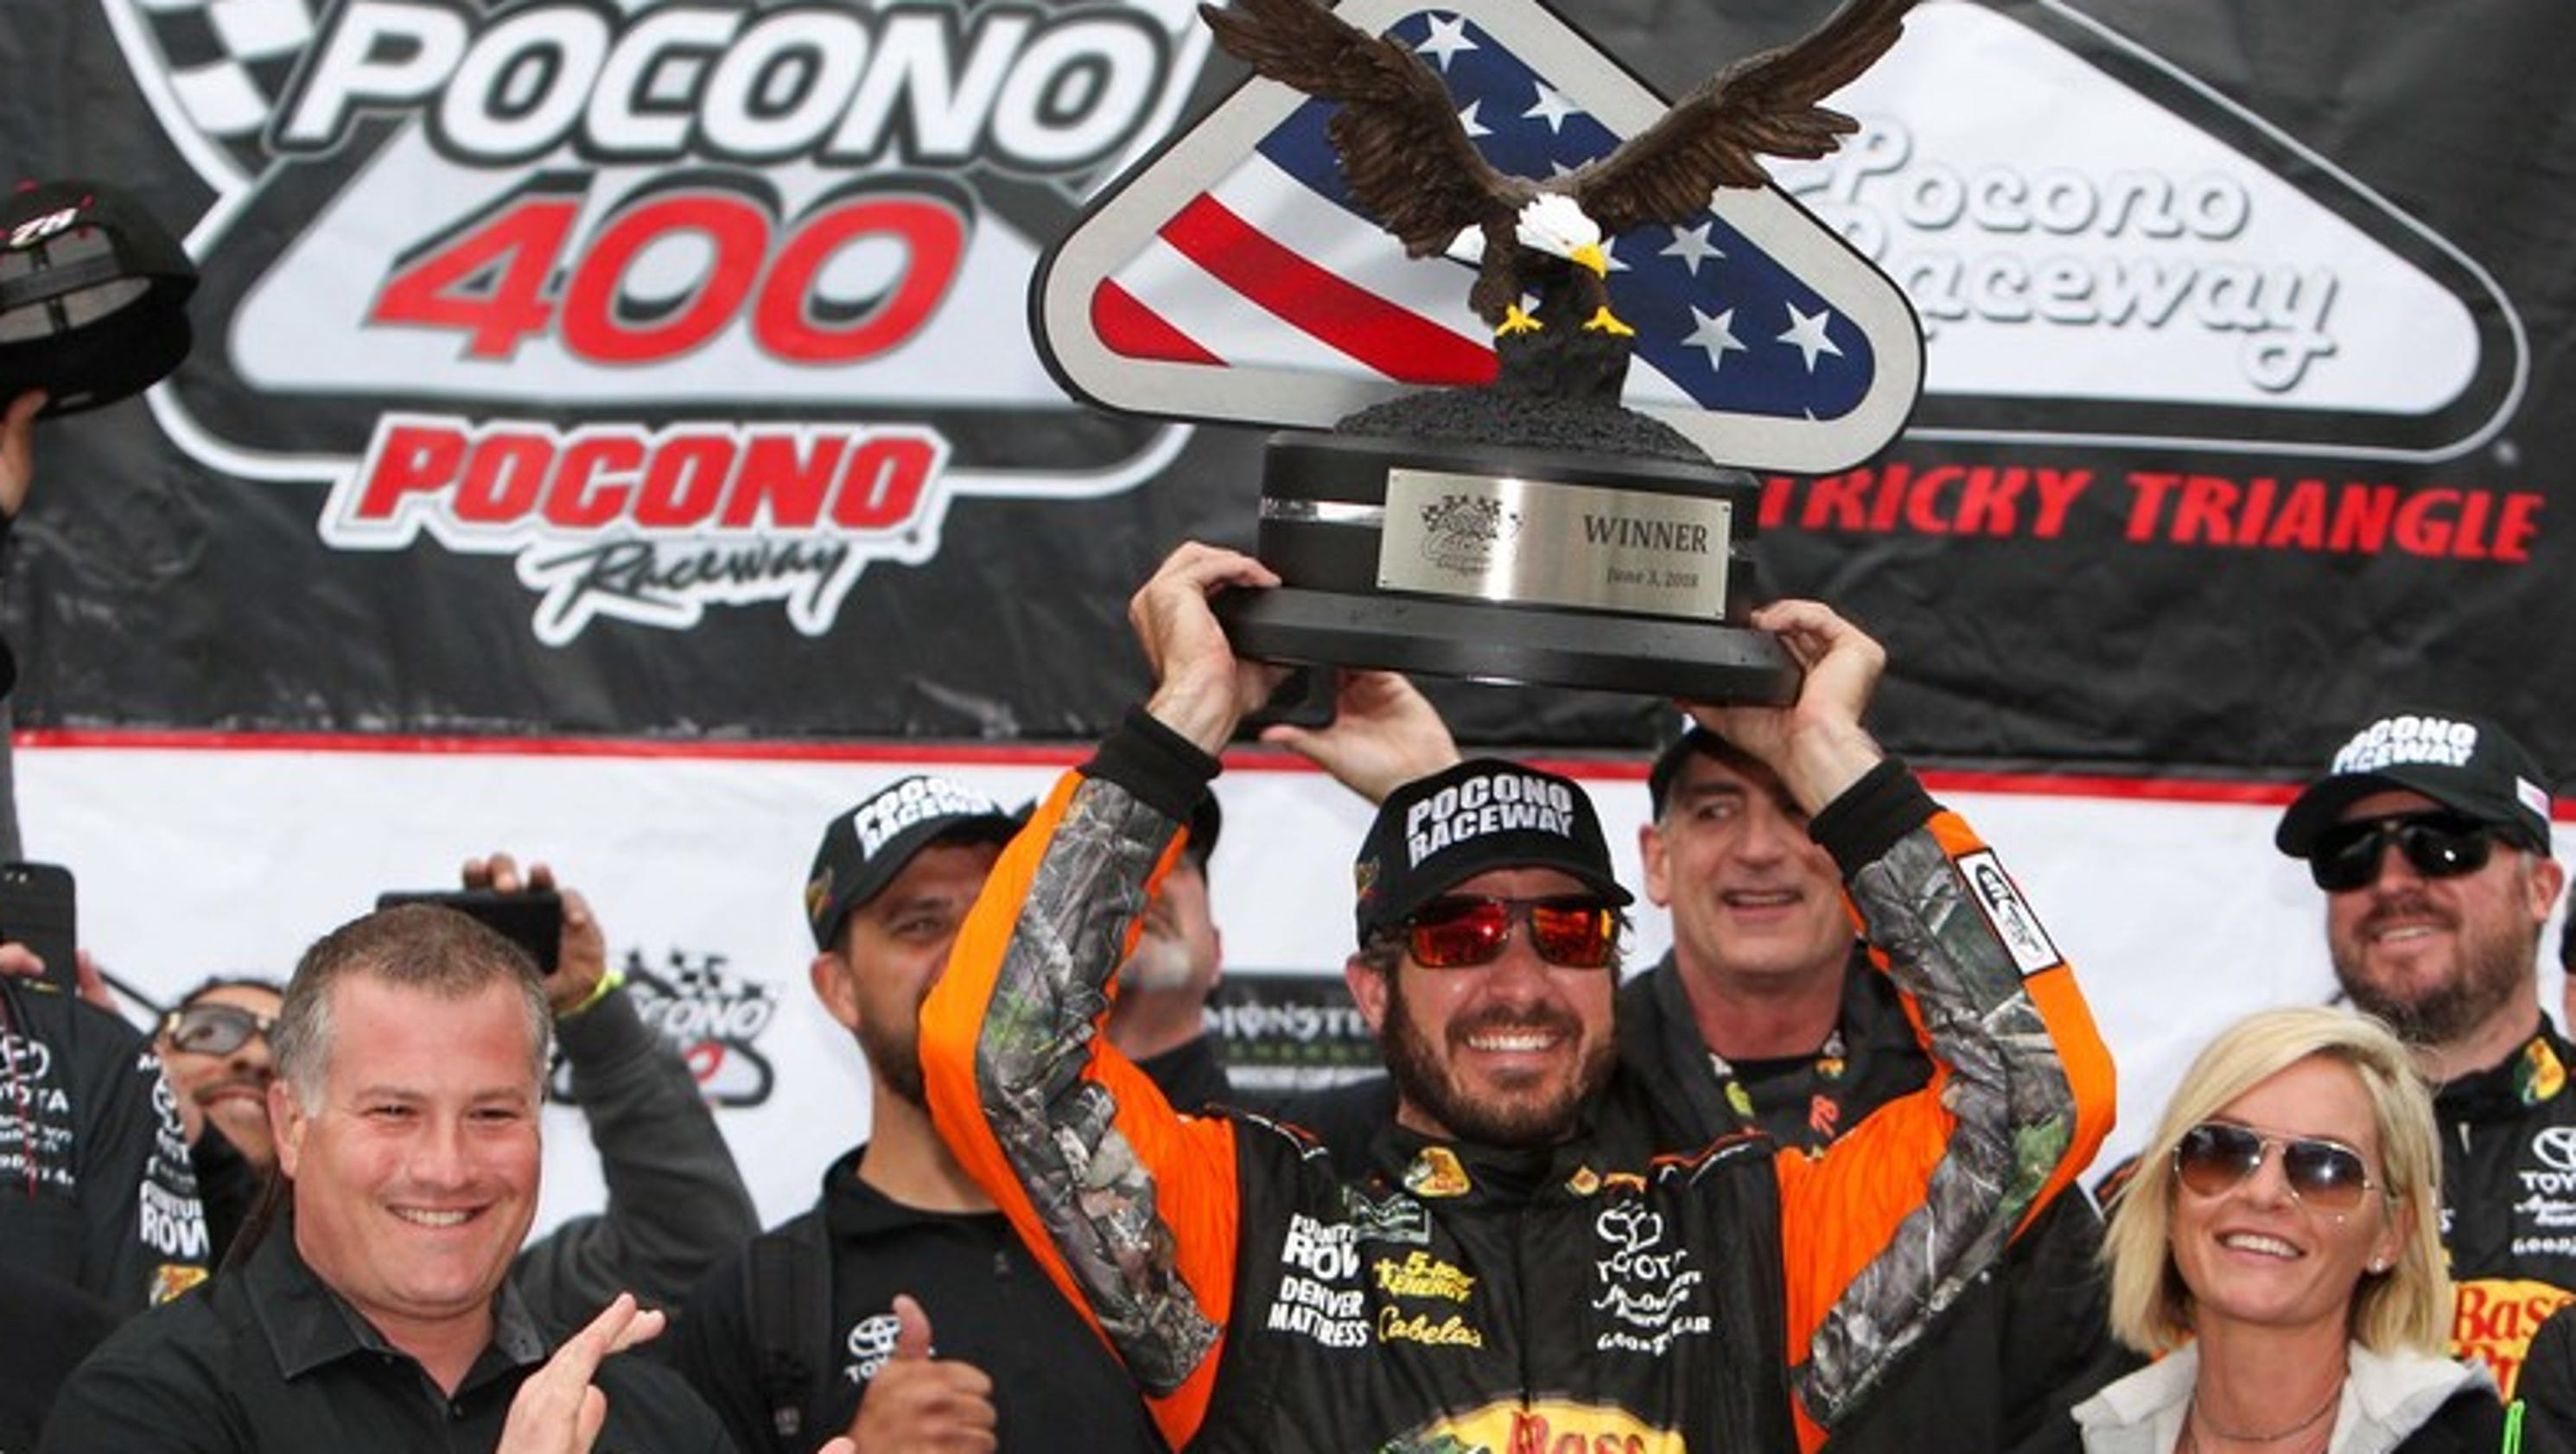 The Monster Energy NASCAR Cup Series and the NASCAR Camping World Truck Series will both be in action at Pocono Raceway this week and the NASCAR Xfinity Series will be at Iowa Speedway.